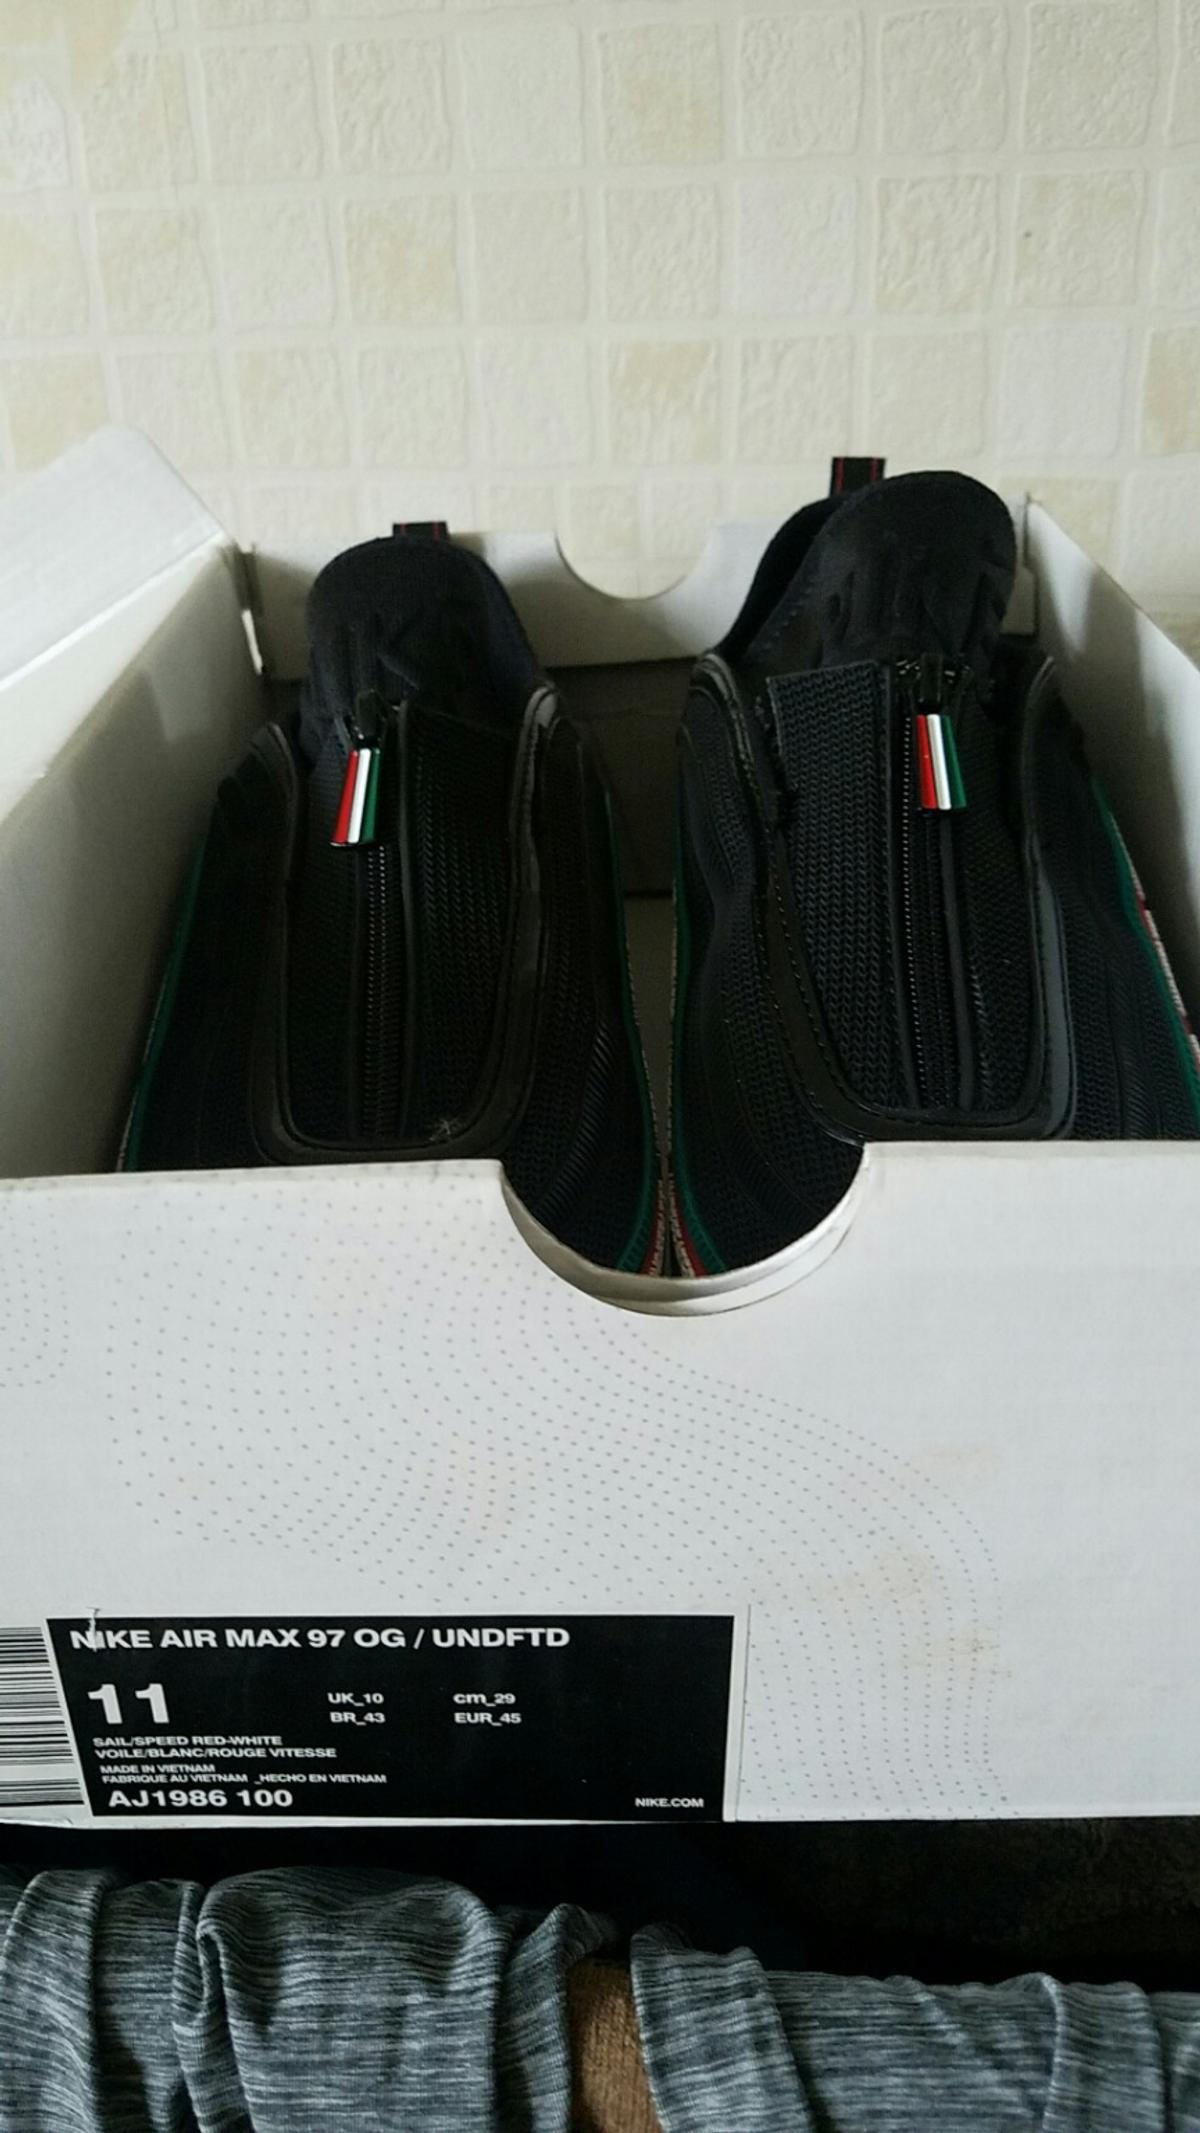 air max replicas size 10 undefeated.